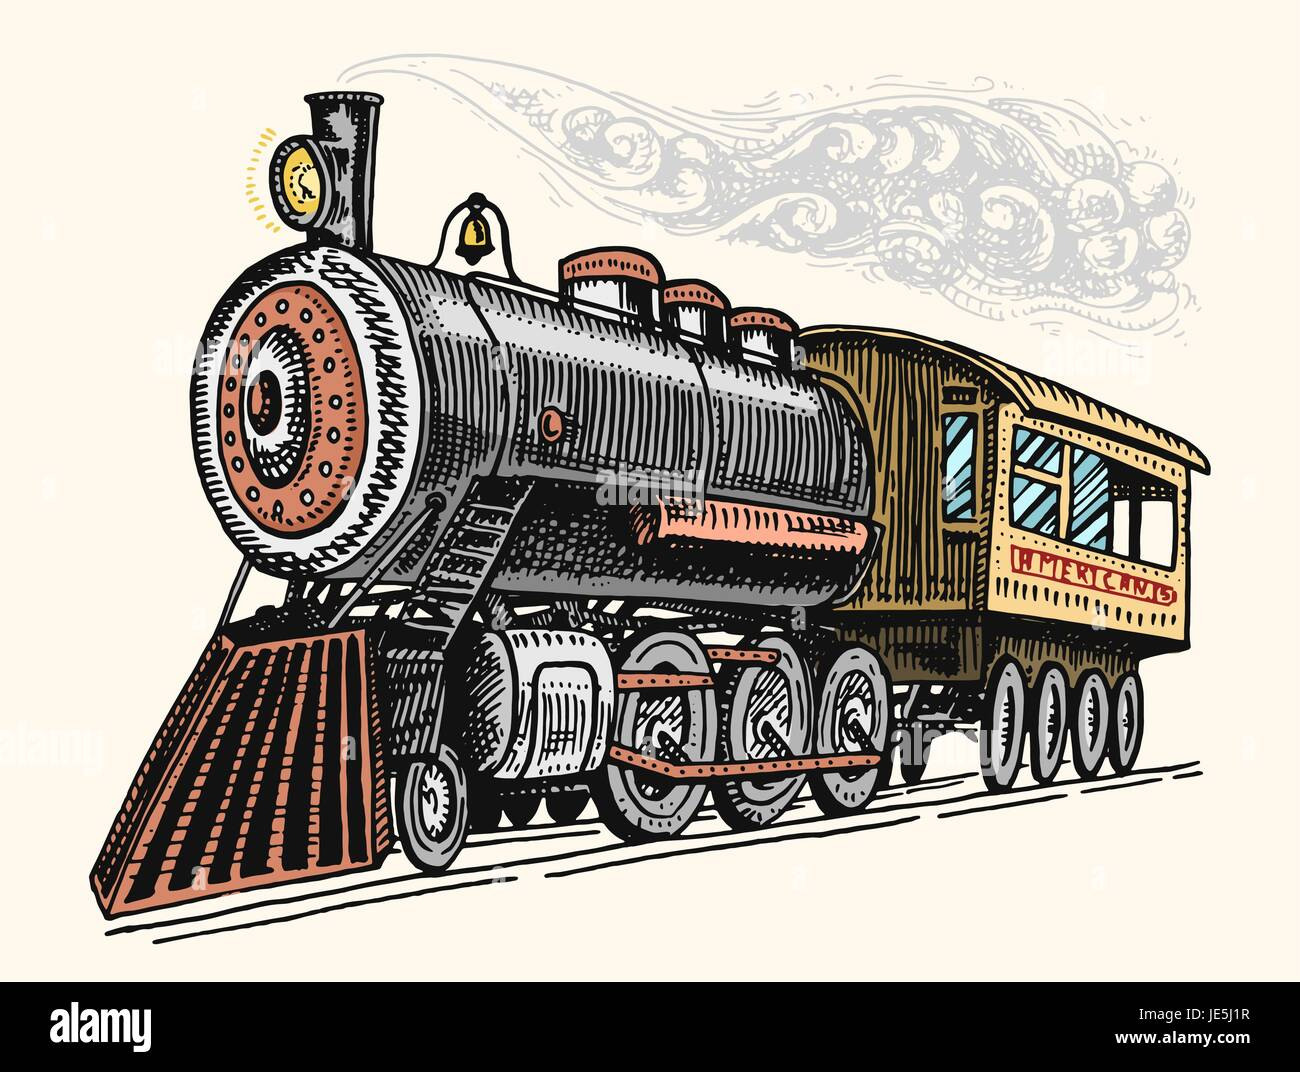 Old steam train cartoon full hd pictures 4k ultra full wallpapers outline sketch blueprint cartoon d animation of old steam locomotive train with freight carriages moving on the rails on vintage dark blue background malvernweather Images